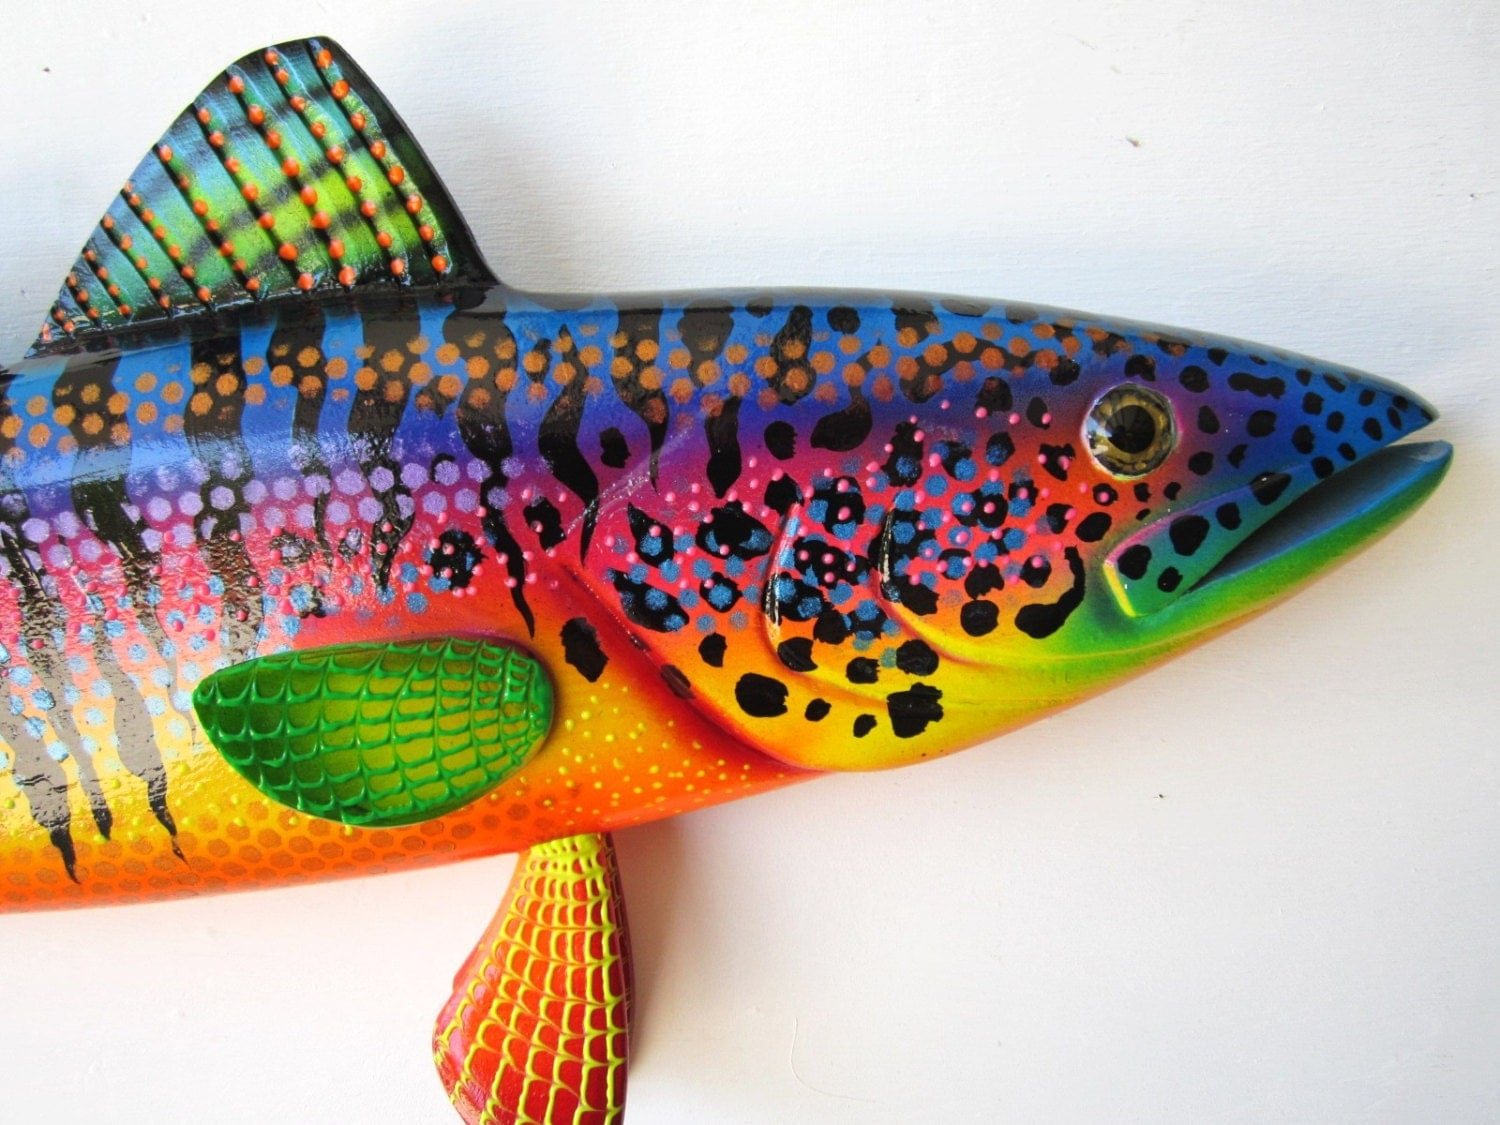 Wall Art Wood Fish : Wood fish carving wall art sculpture